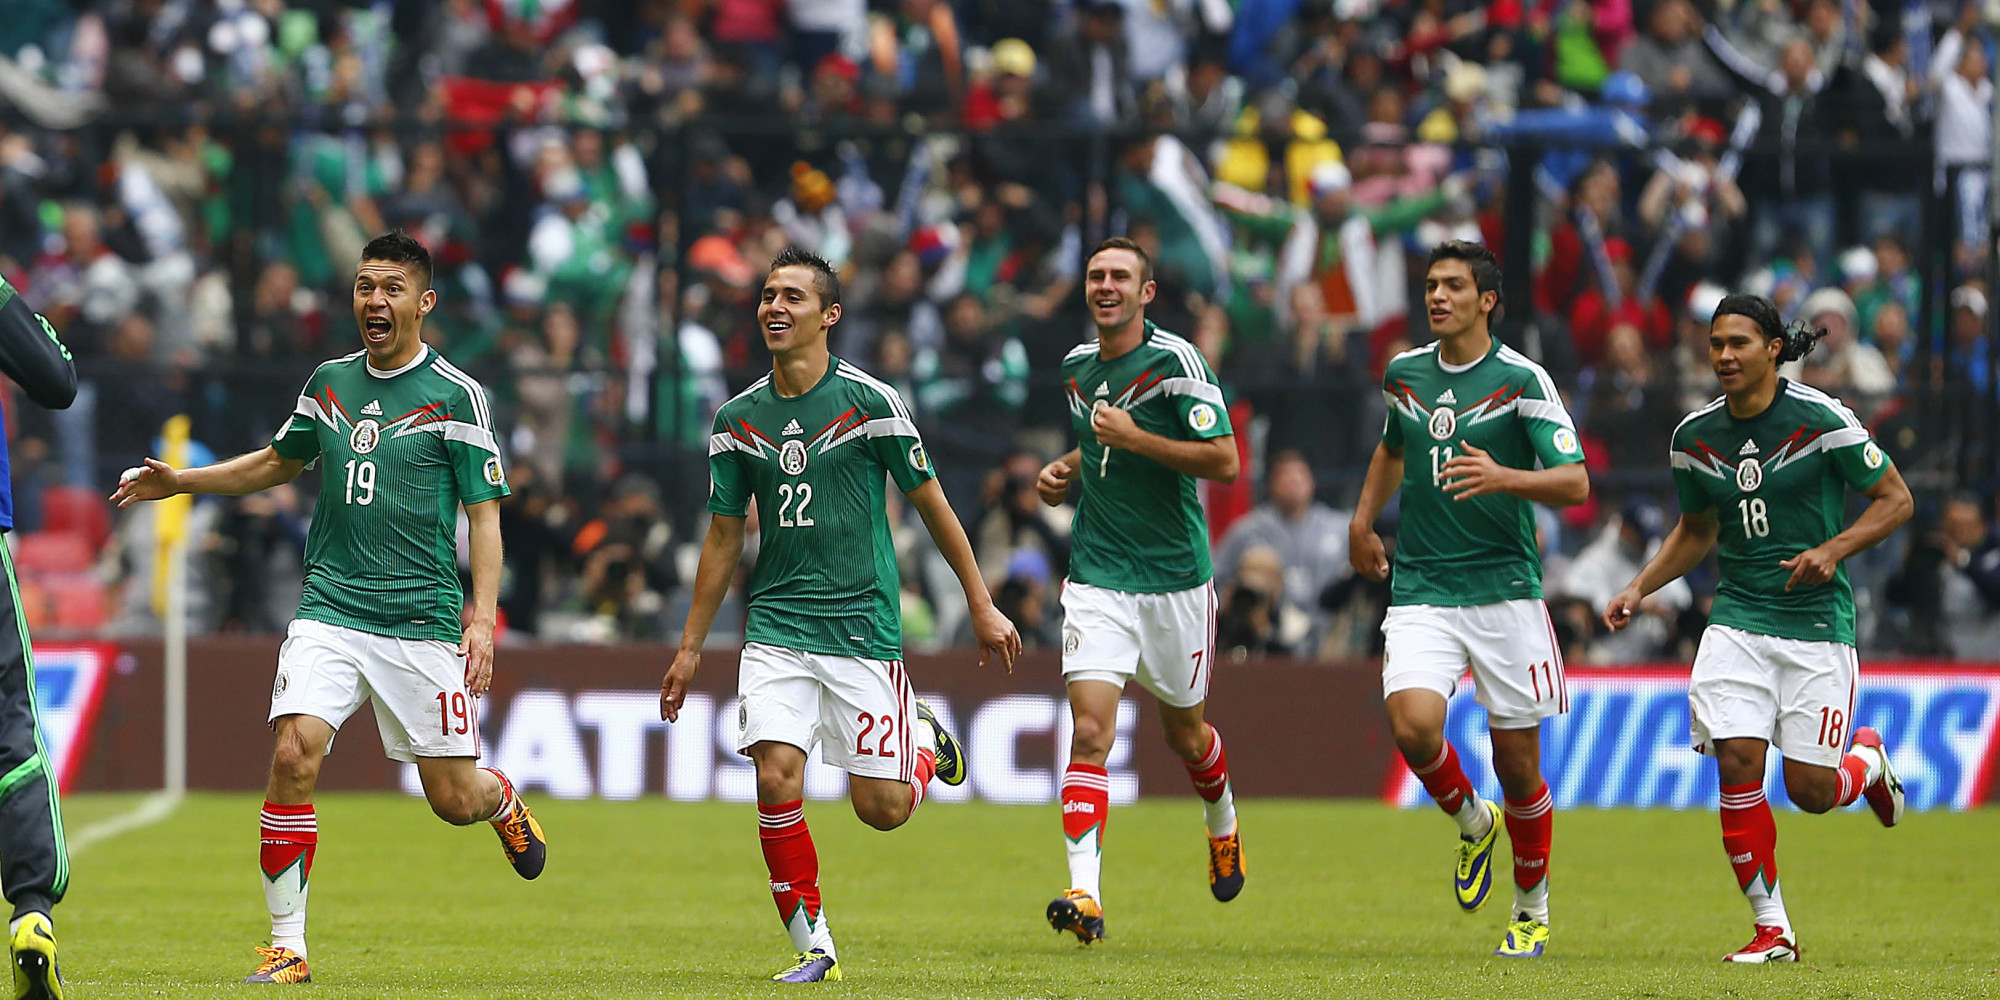 Download group a mexico 2014 world cup HD wallpaper 2000x1000